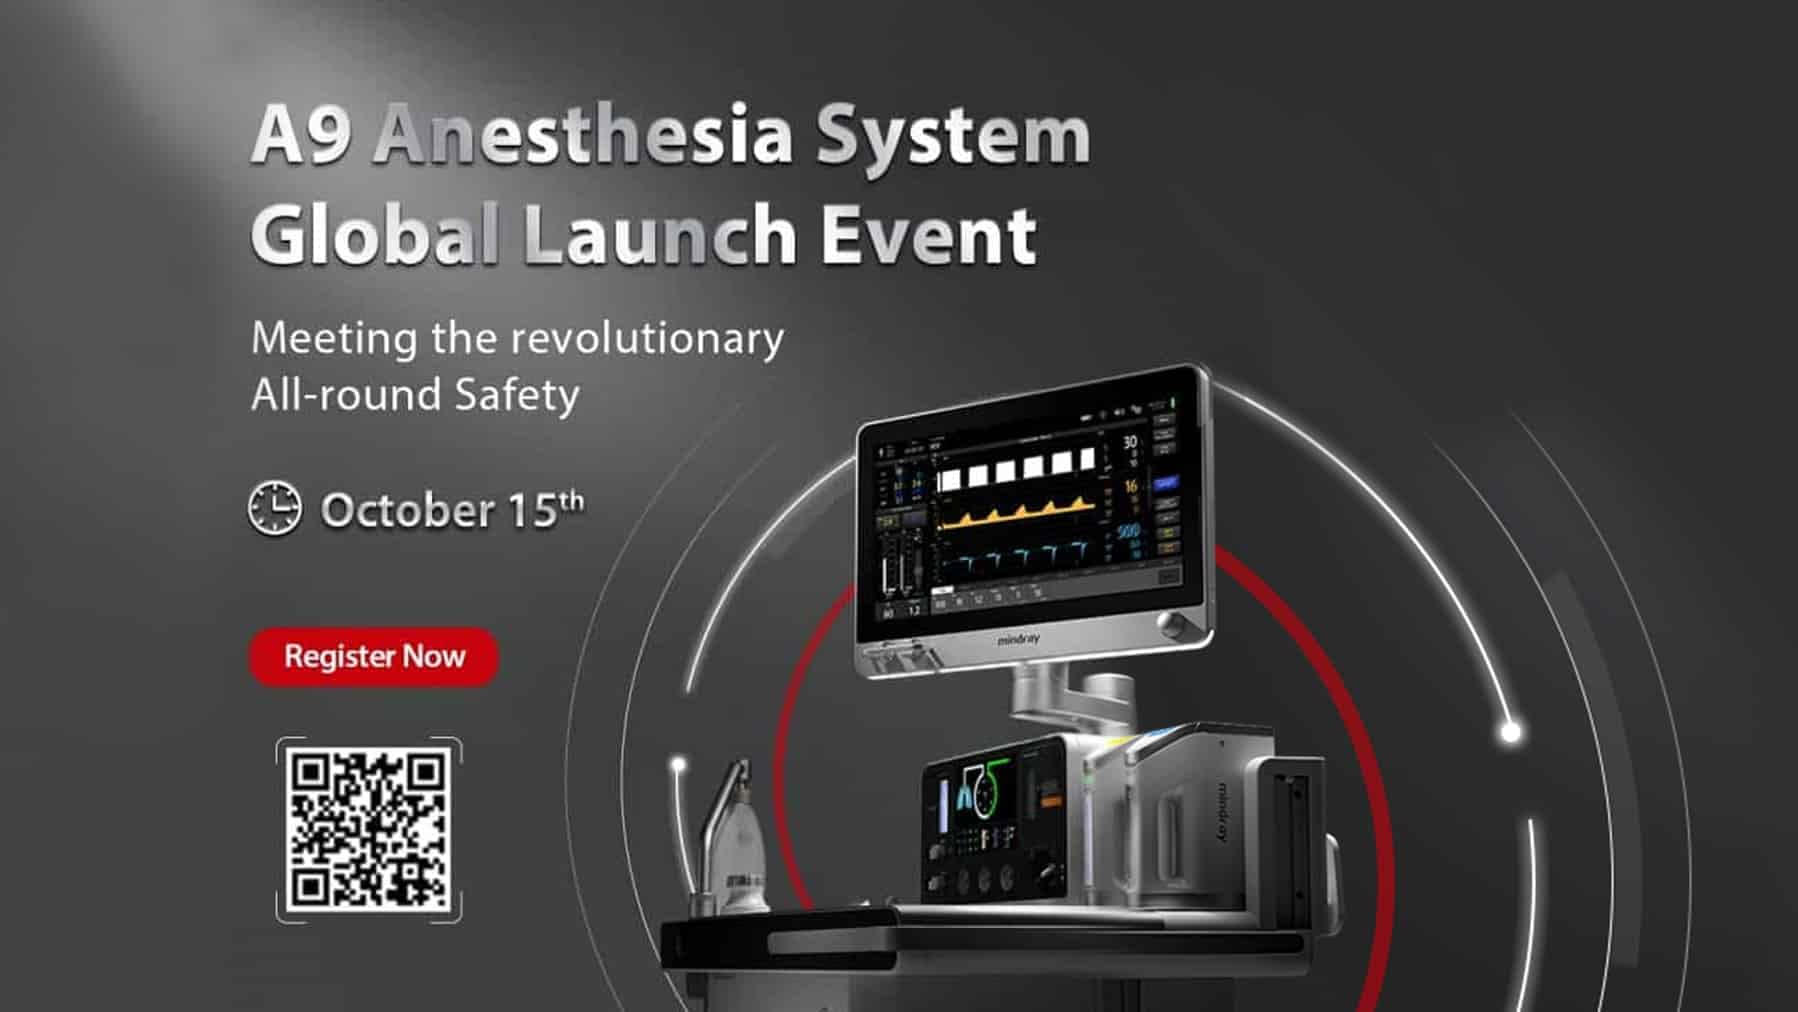 Mindray A9 Anesthesia System Global Launch Event